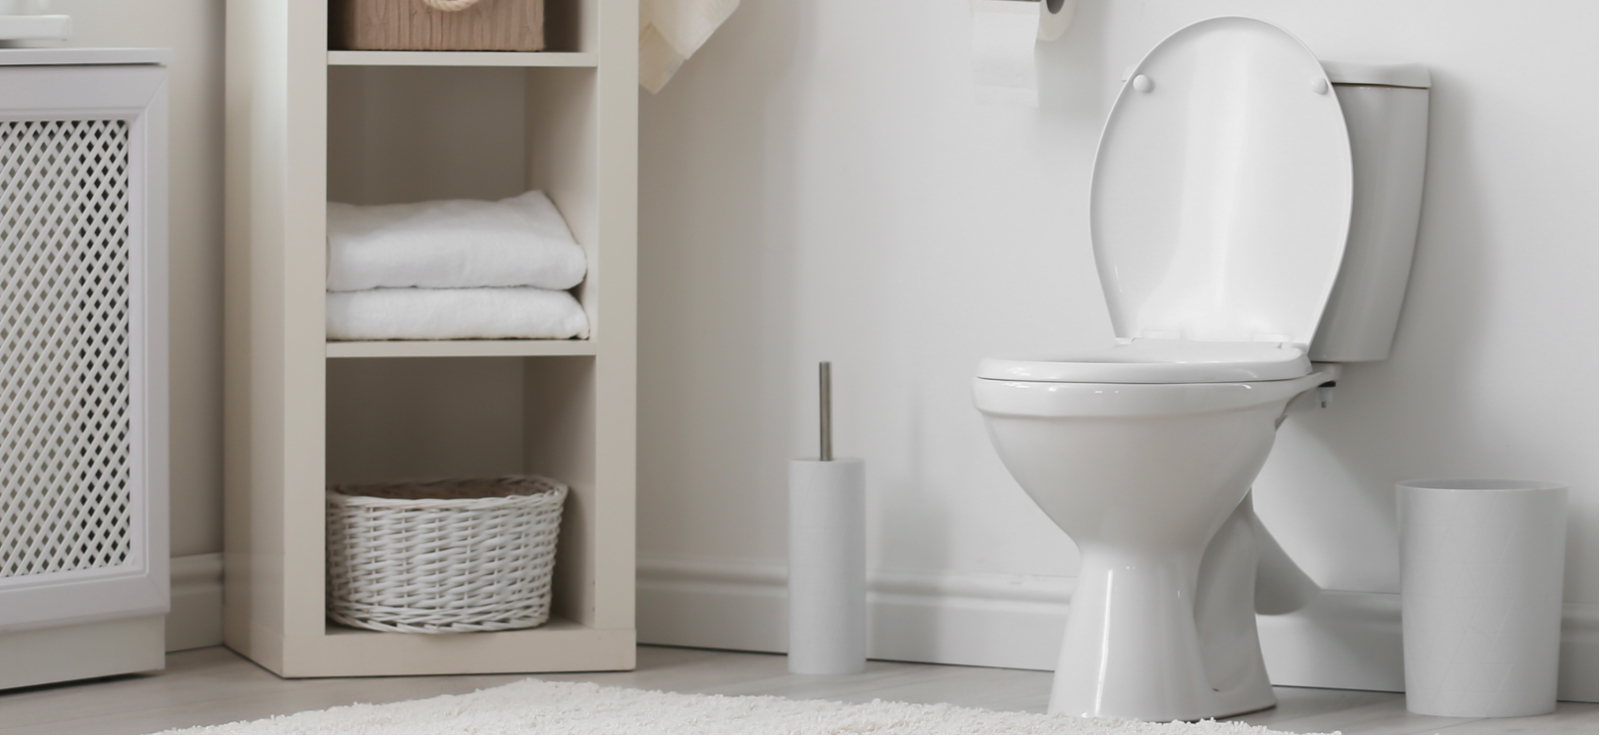 What is a Comfort Height Toilet?